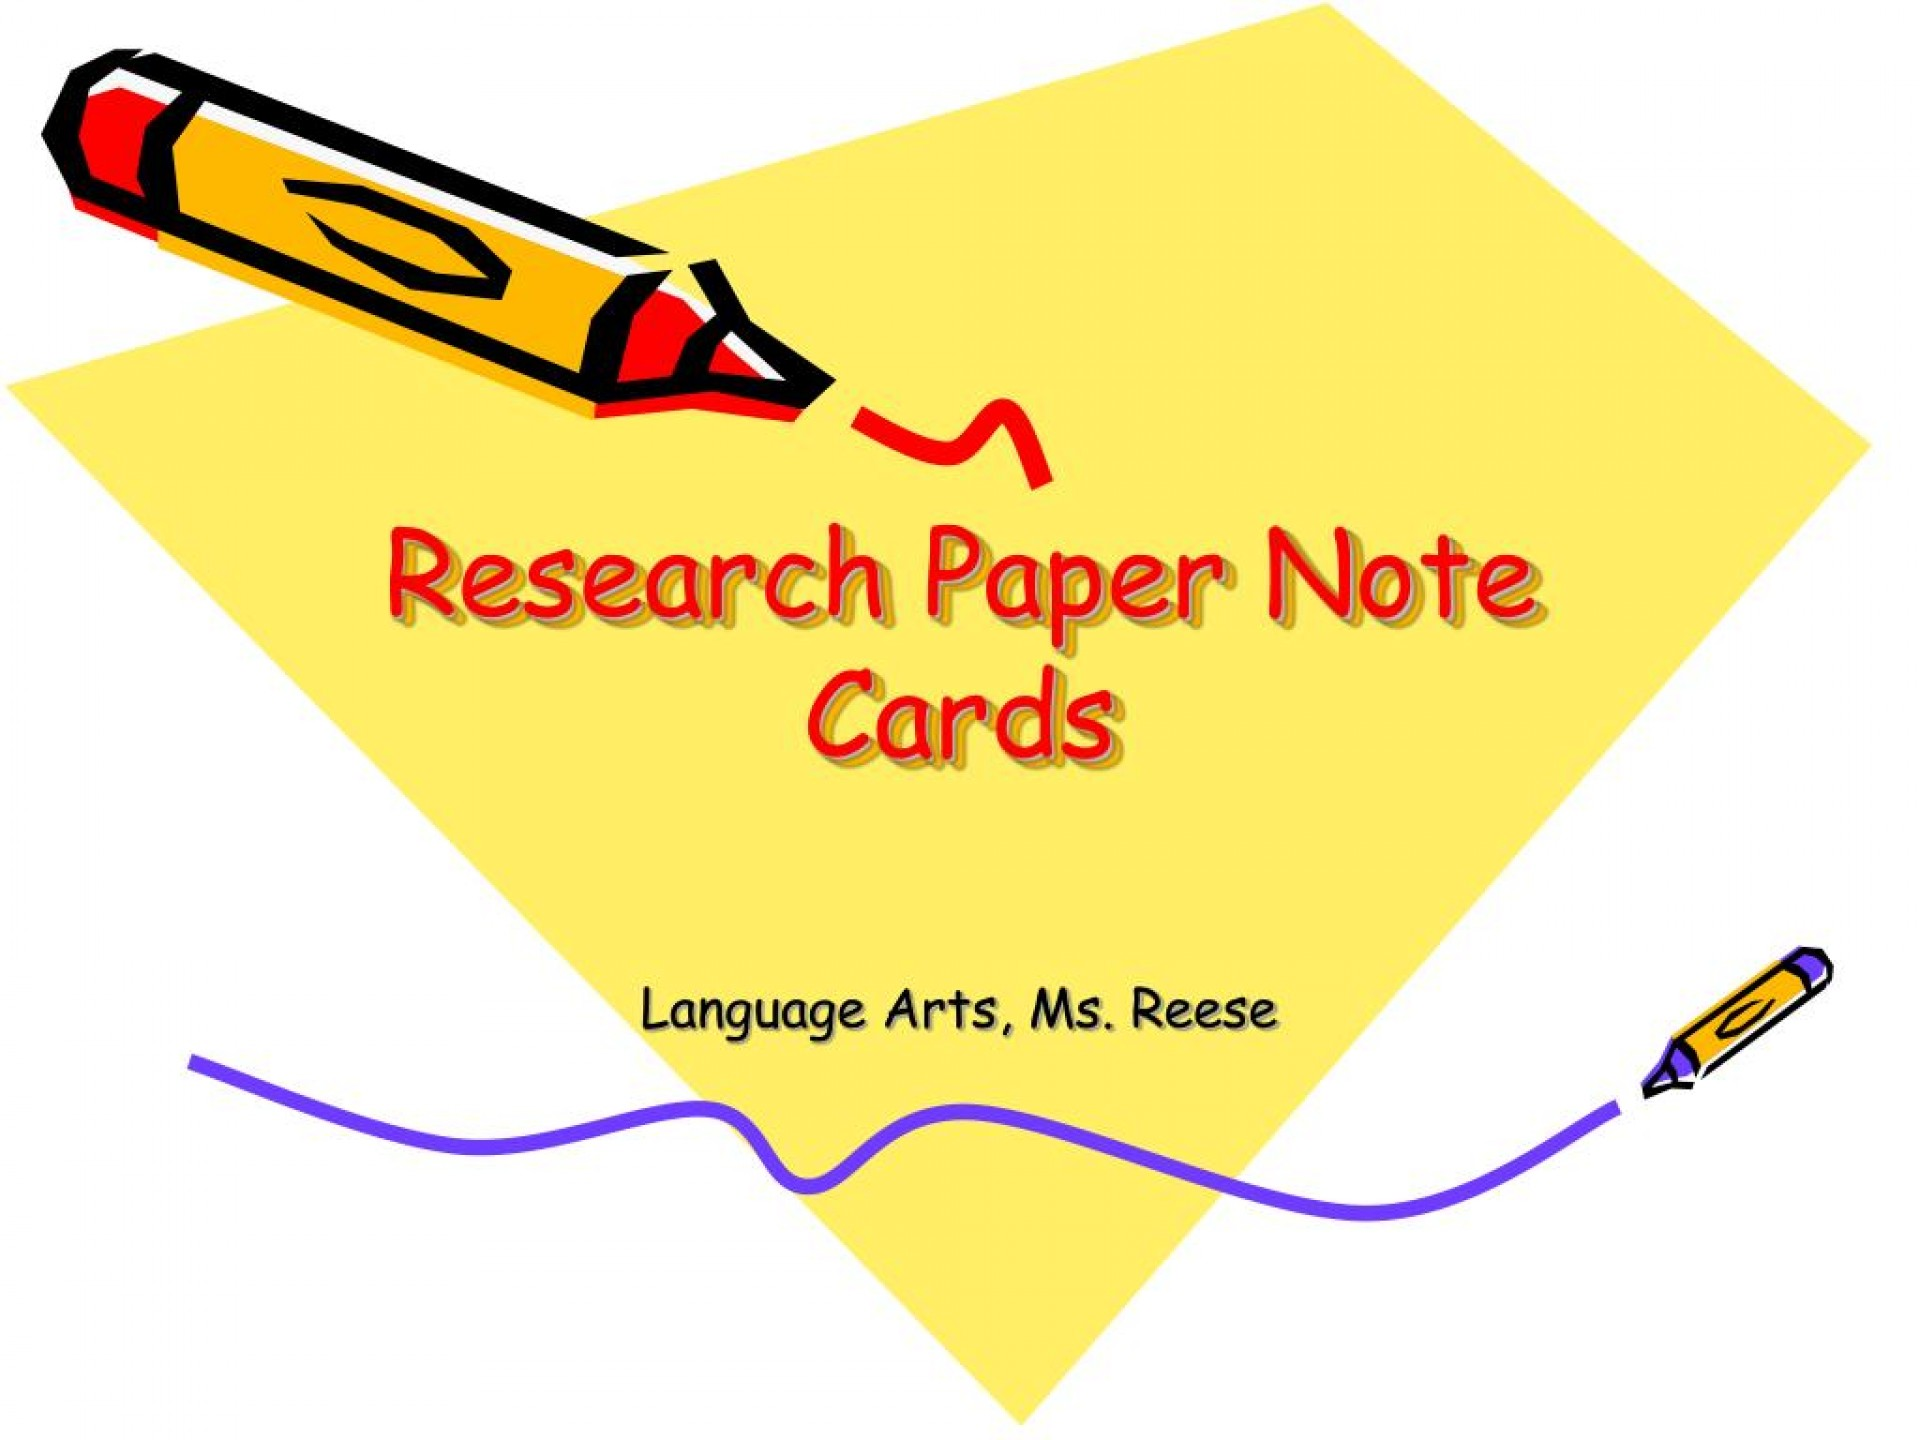 017 Research Paper Note Cards Wonderful Apa Format Examples For A Card 1920